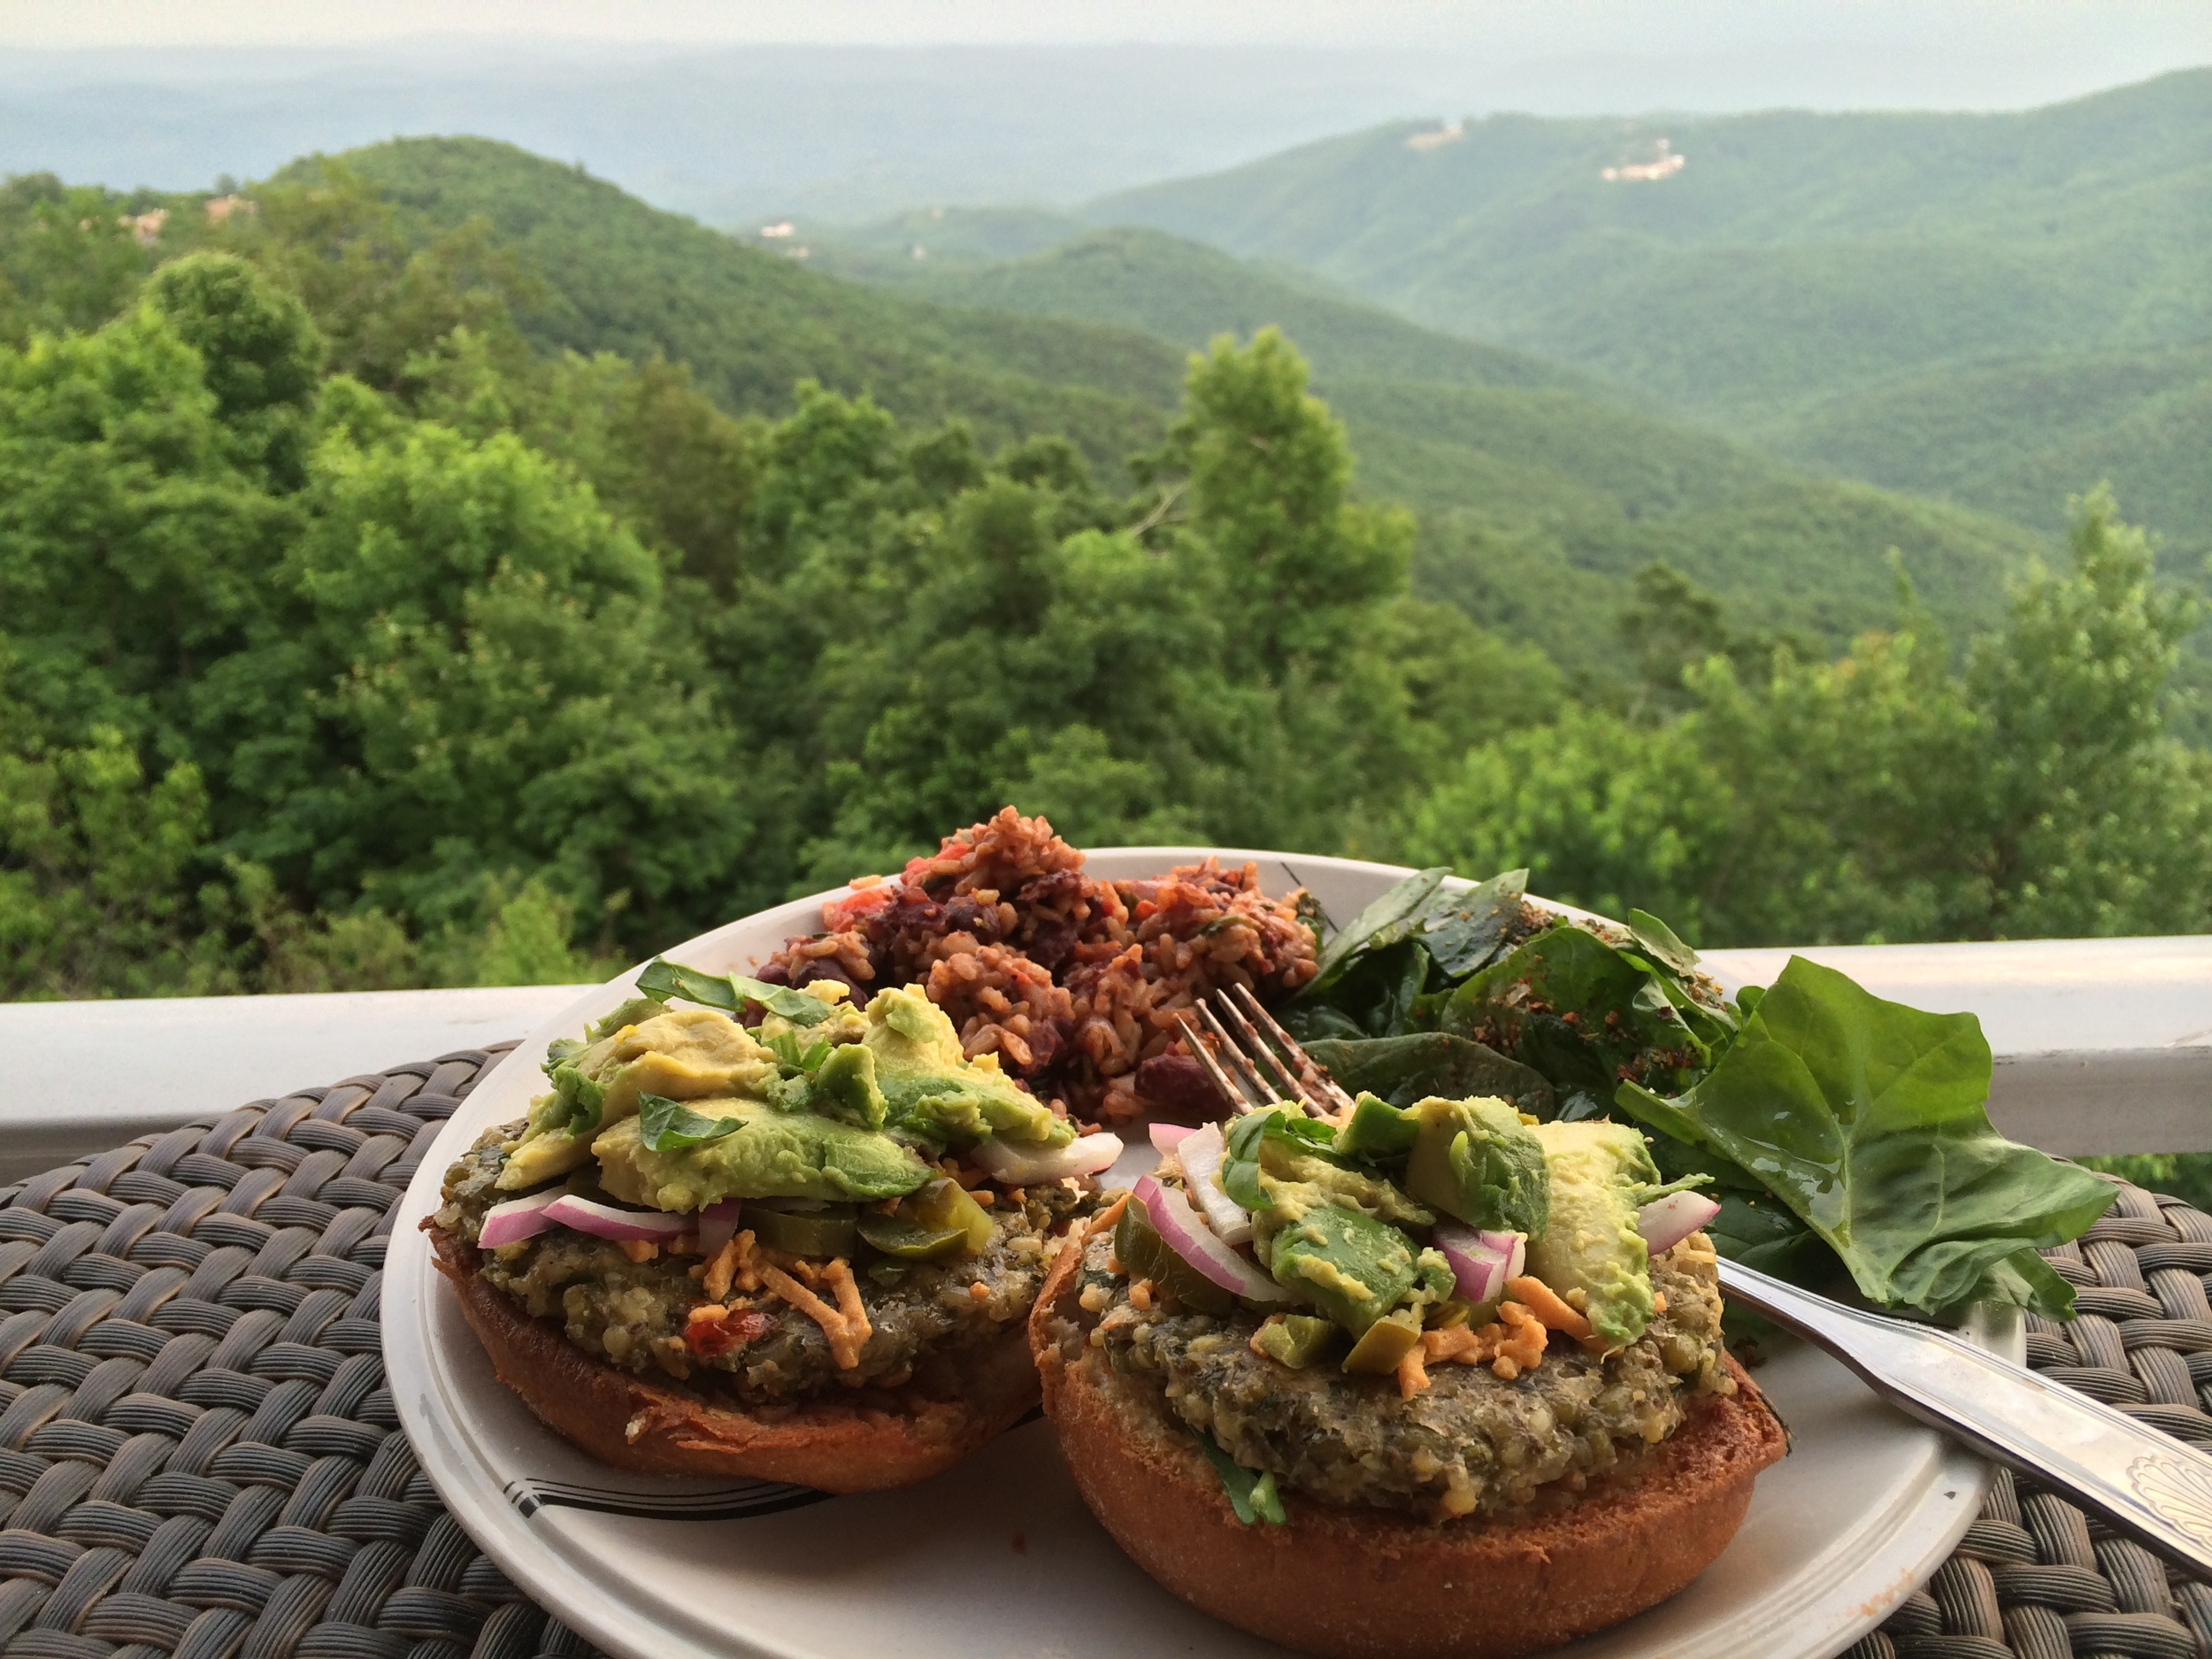 Thai Temple Burgers over the Blue Ridge. Gluten, Soy, Dairy Free Veggie Burgers that are Spectacularly Good!